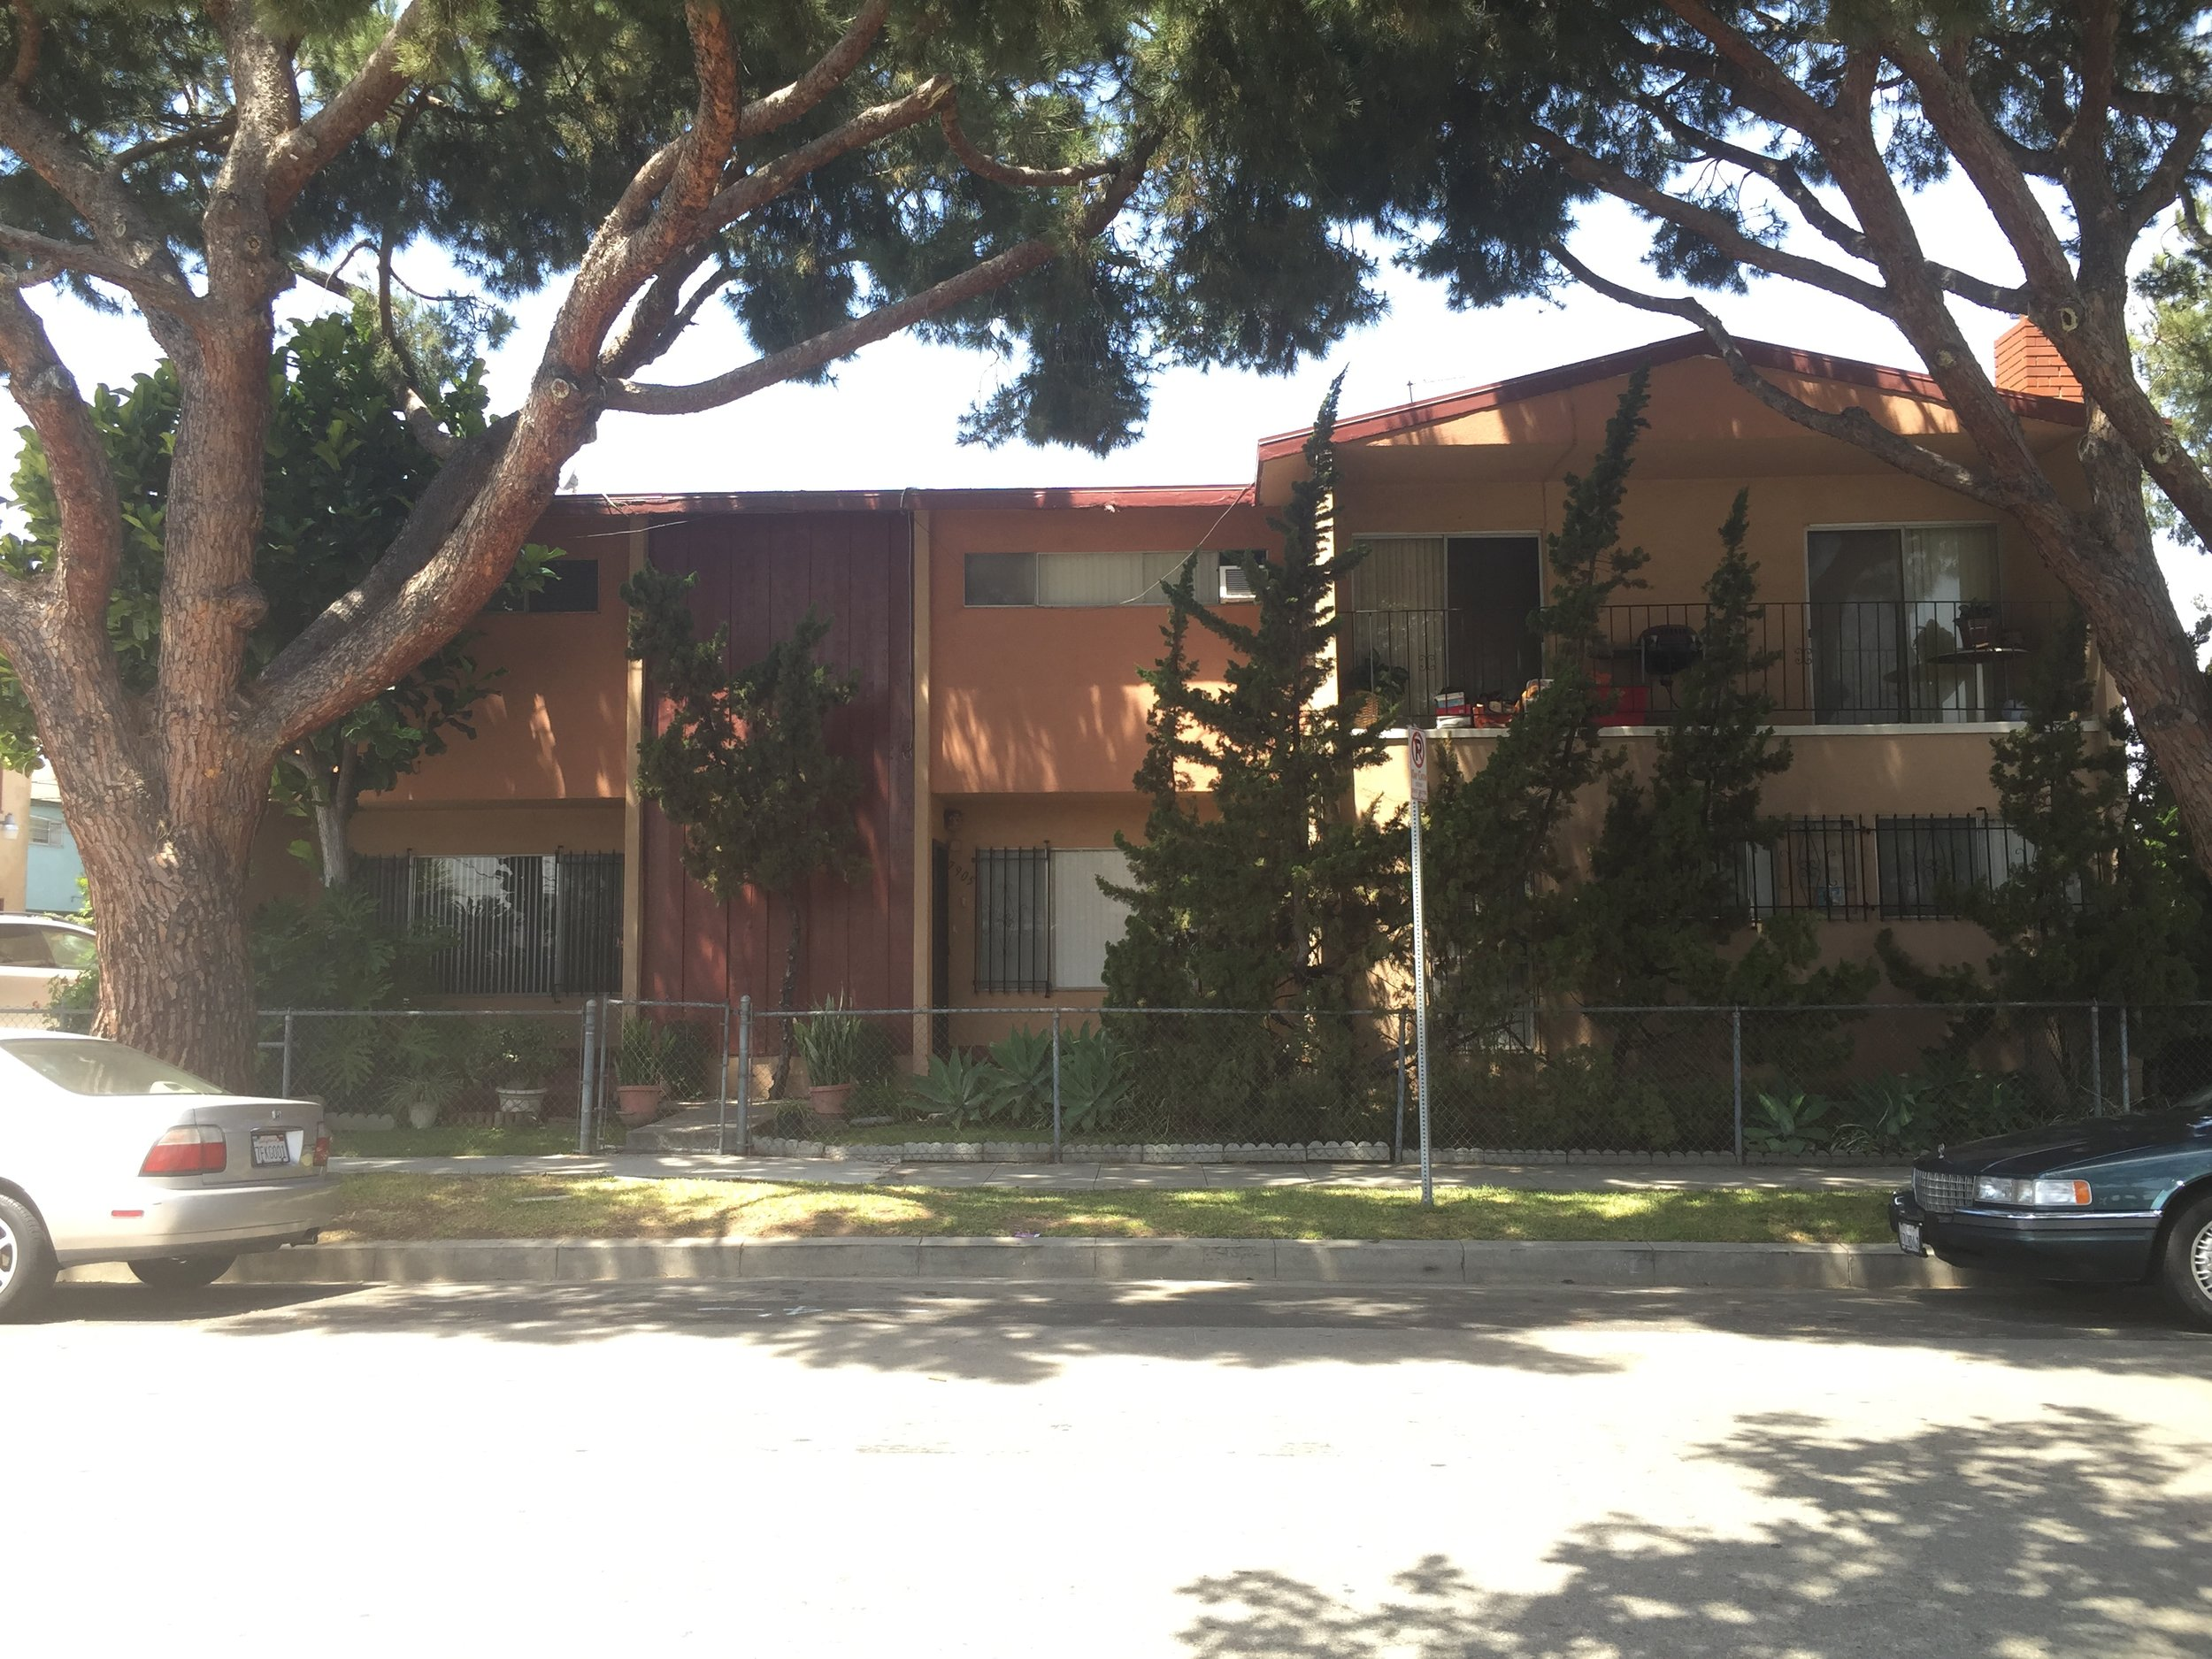 1700 W 79th St-View of Units from Harvard Blvd.JPG